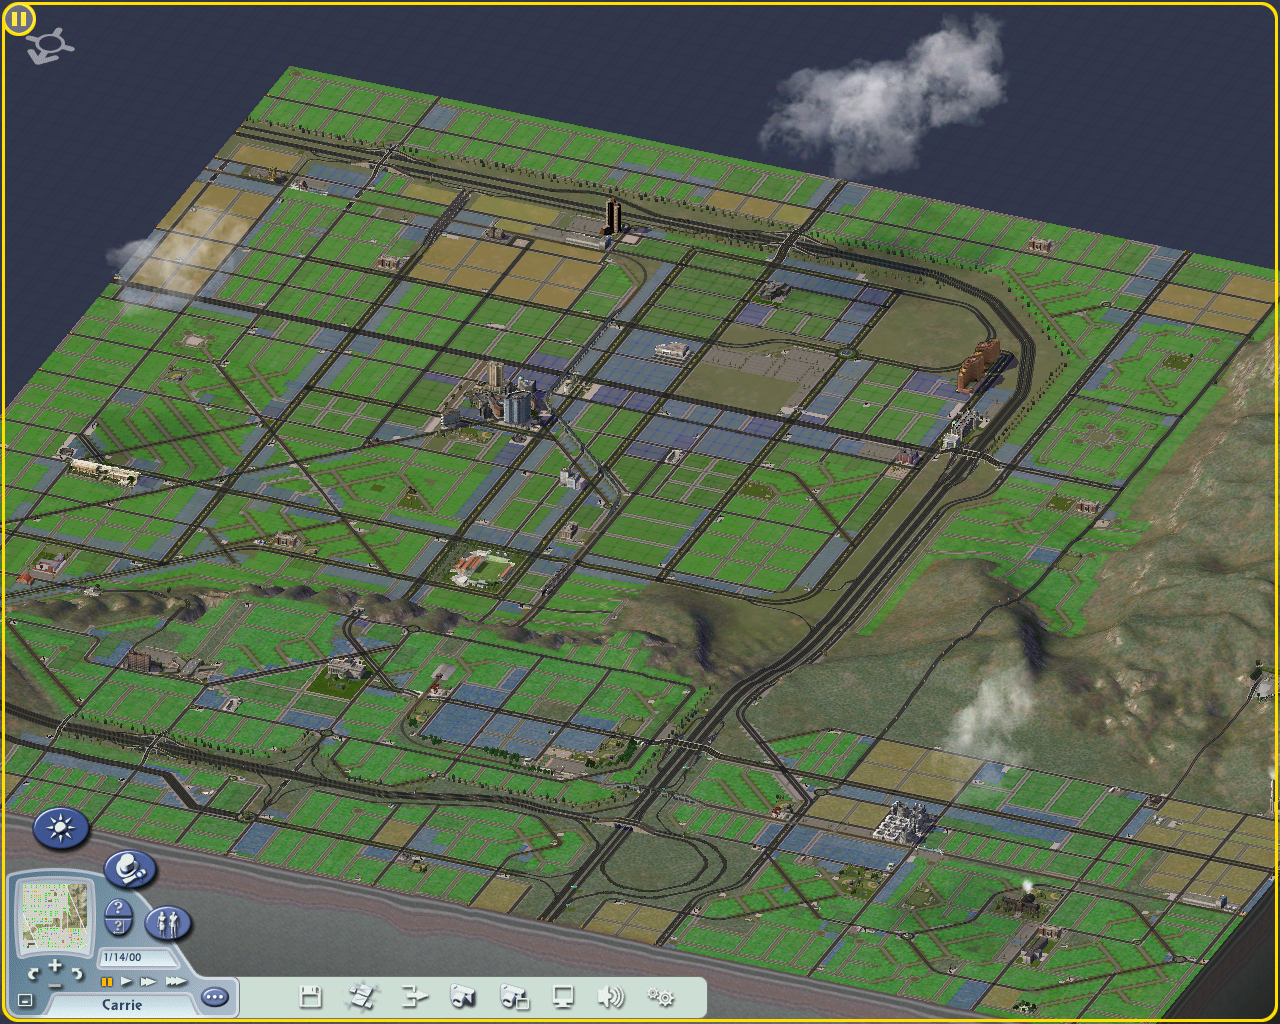 update_nam_construction_zoneing_by_soulproductions-d5sasic.png